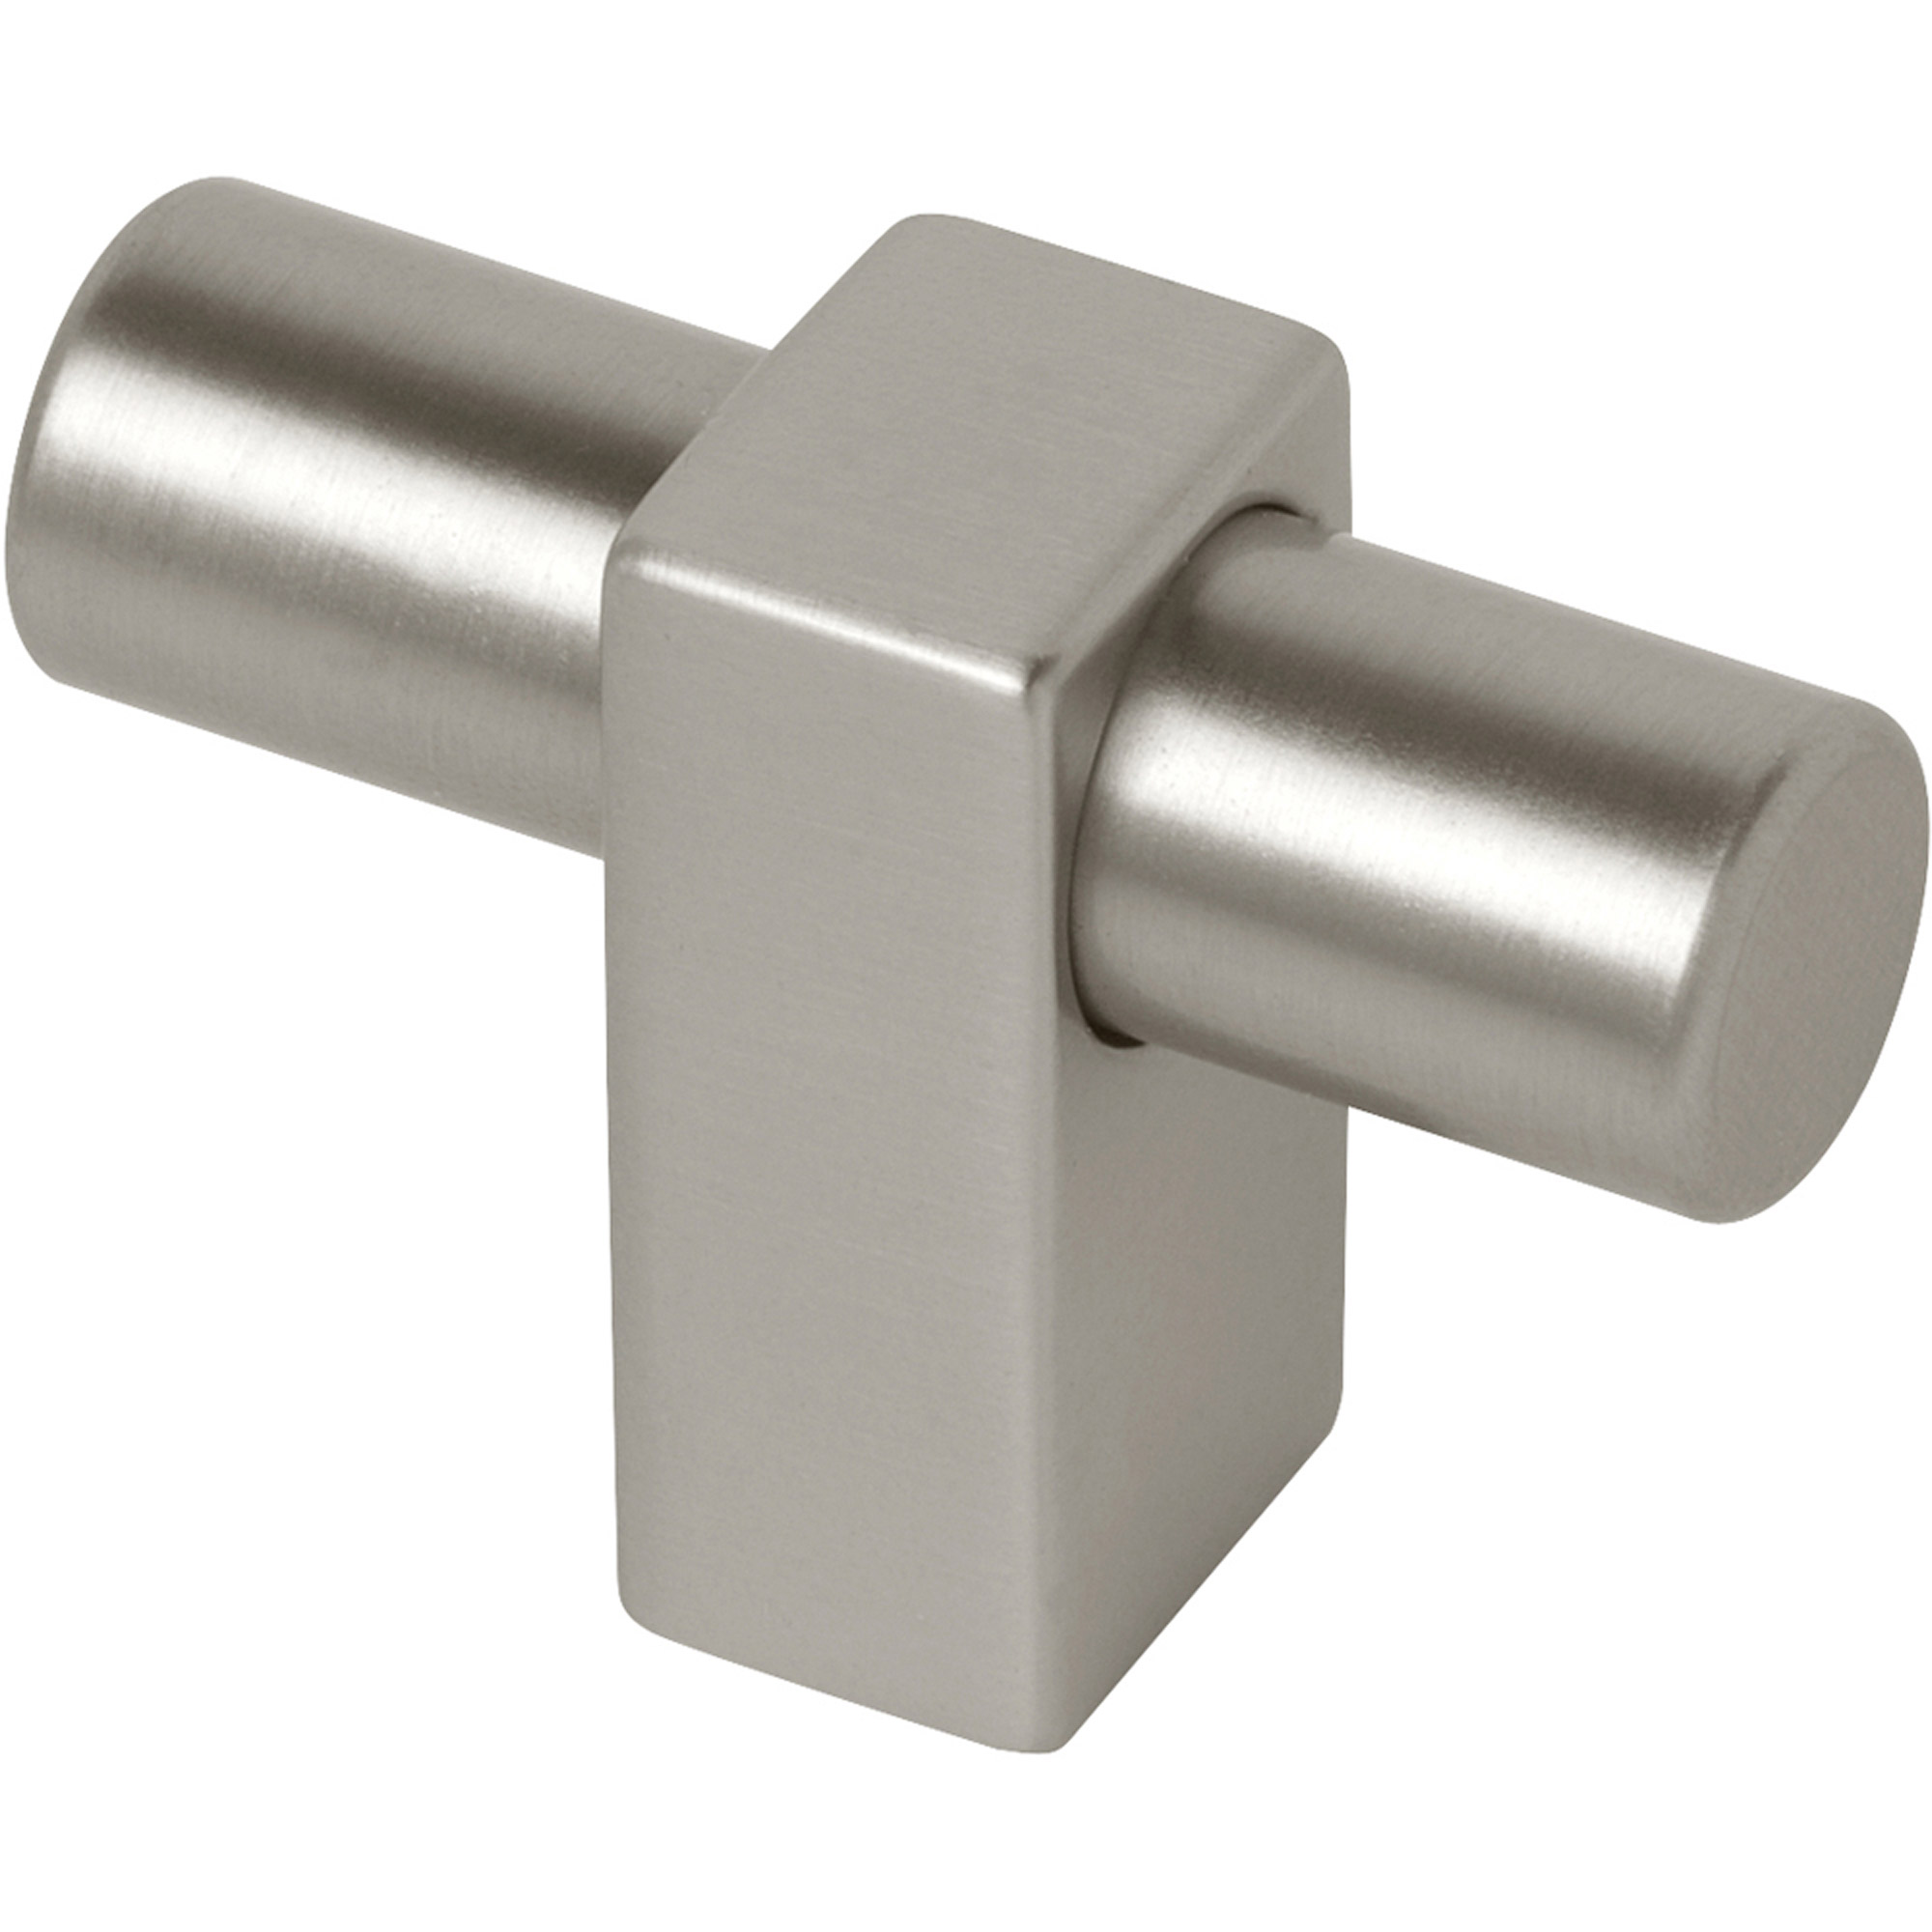 Liberty 45mm Artesia Knob, Available in Multiple Colors